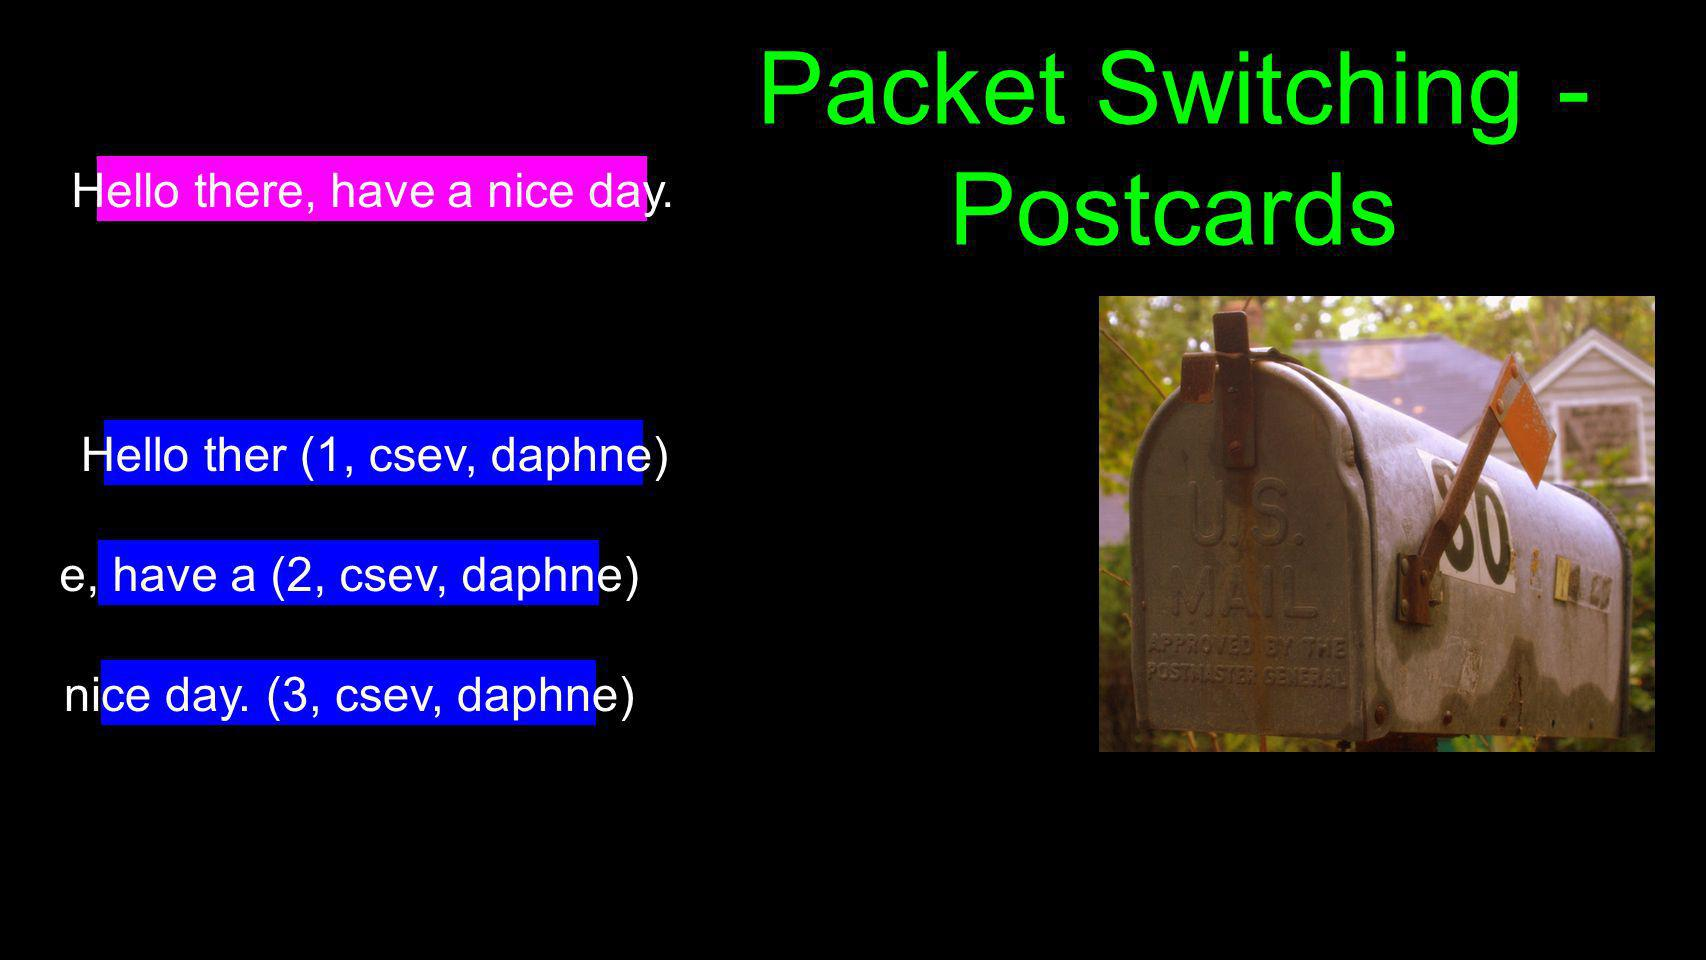 Packet Switching - Postcards